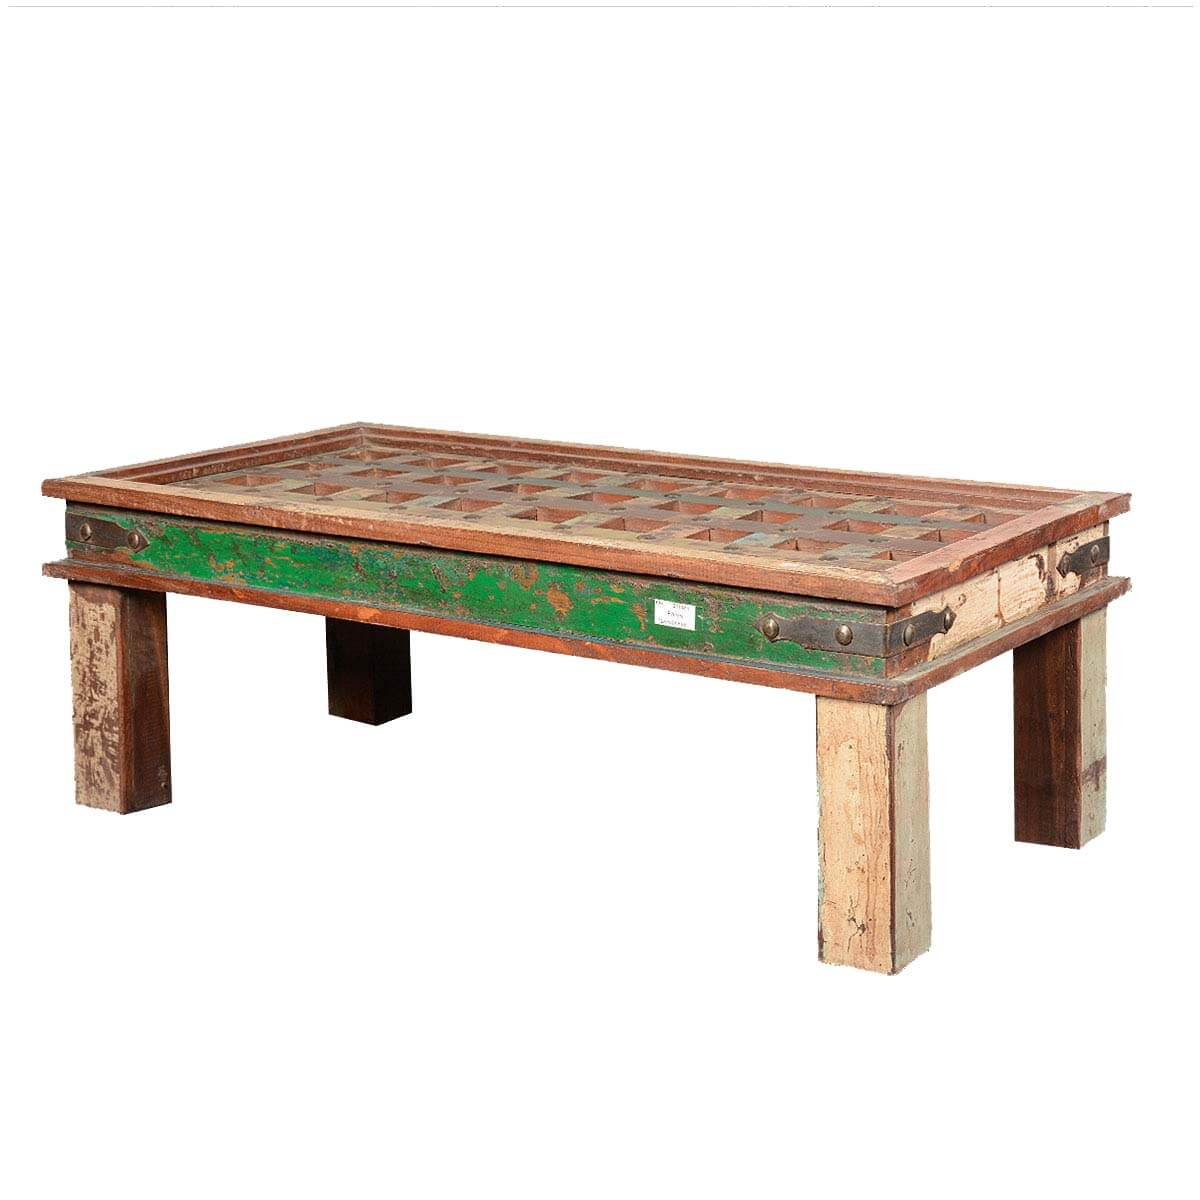 Rustic coffee table french quarter reclaimed wood lattice top for Rustic coffee table